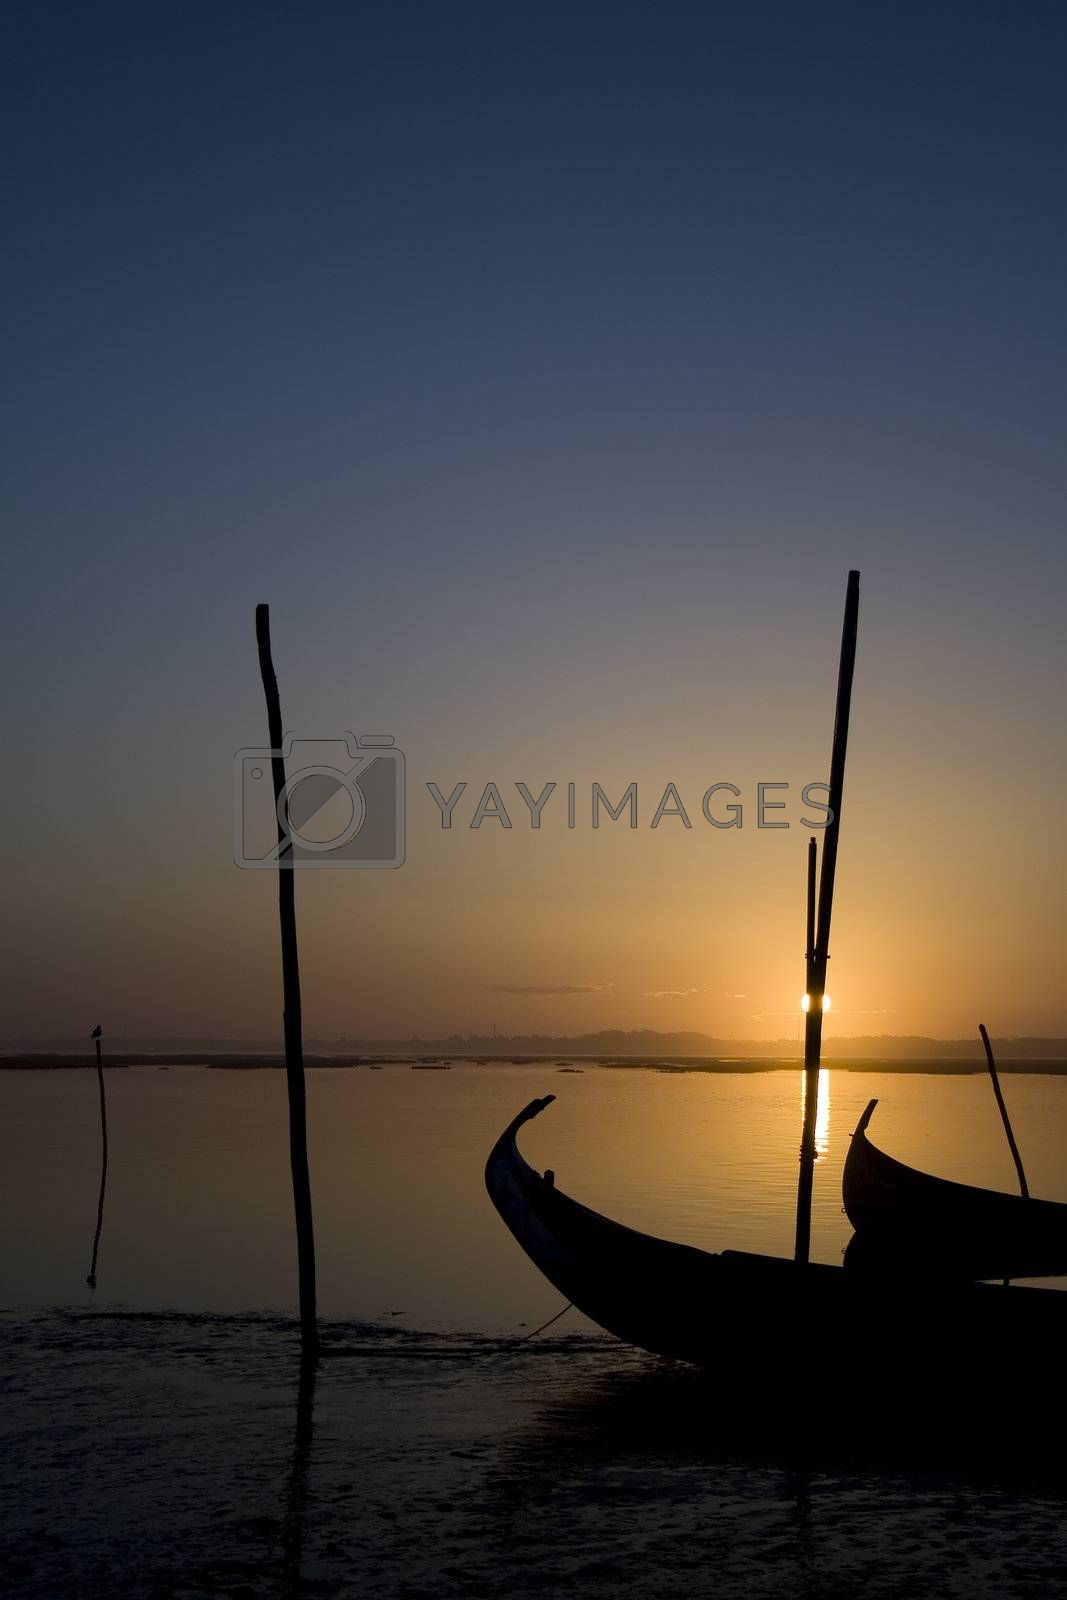 Moliceiro boat on sunset by PauloResende